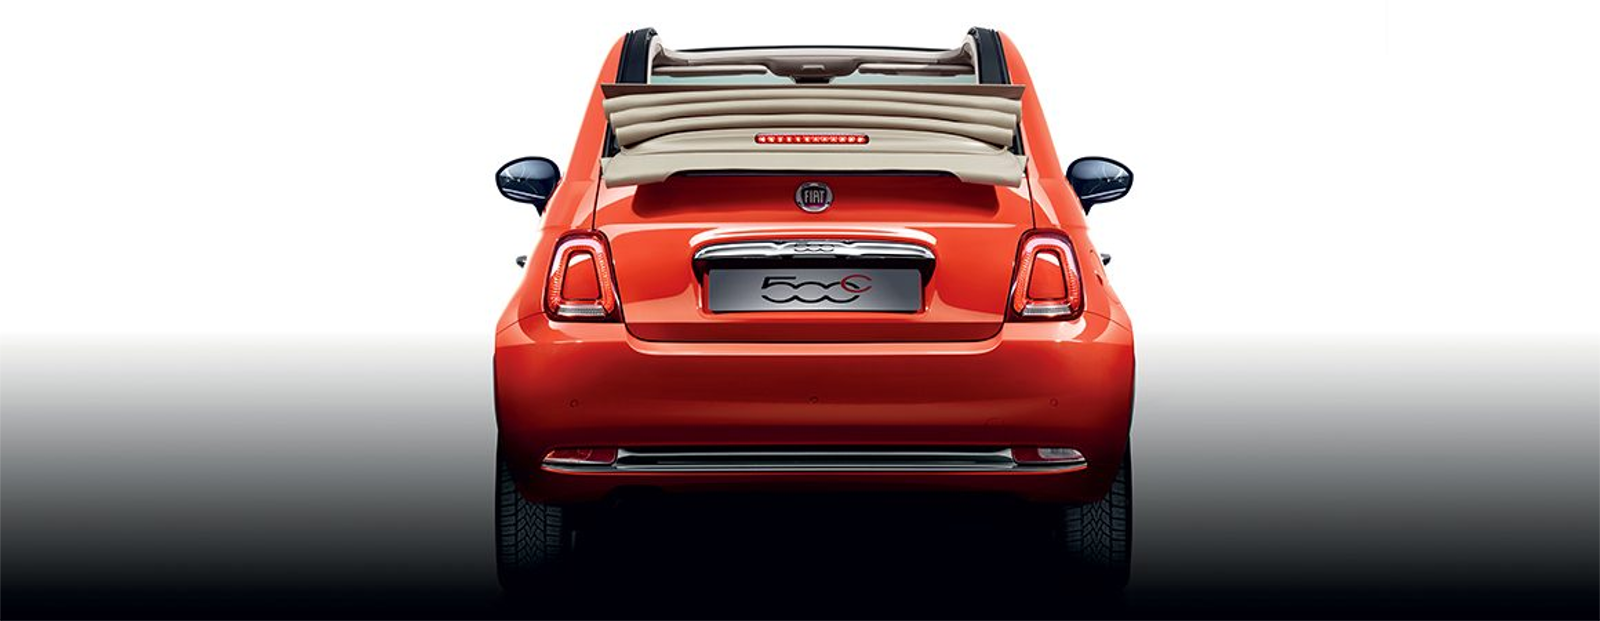 Lateral Fiat 500C